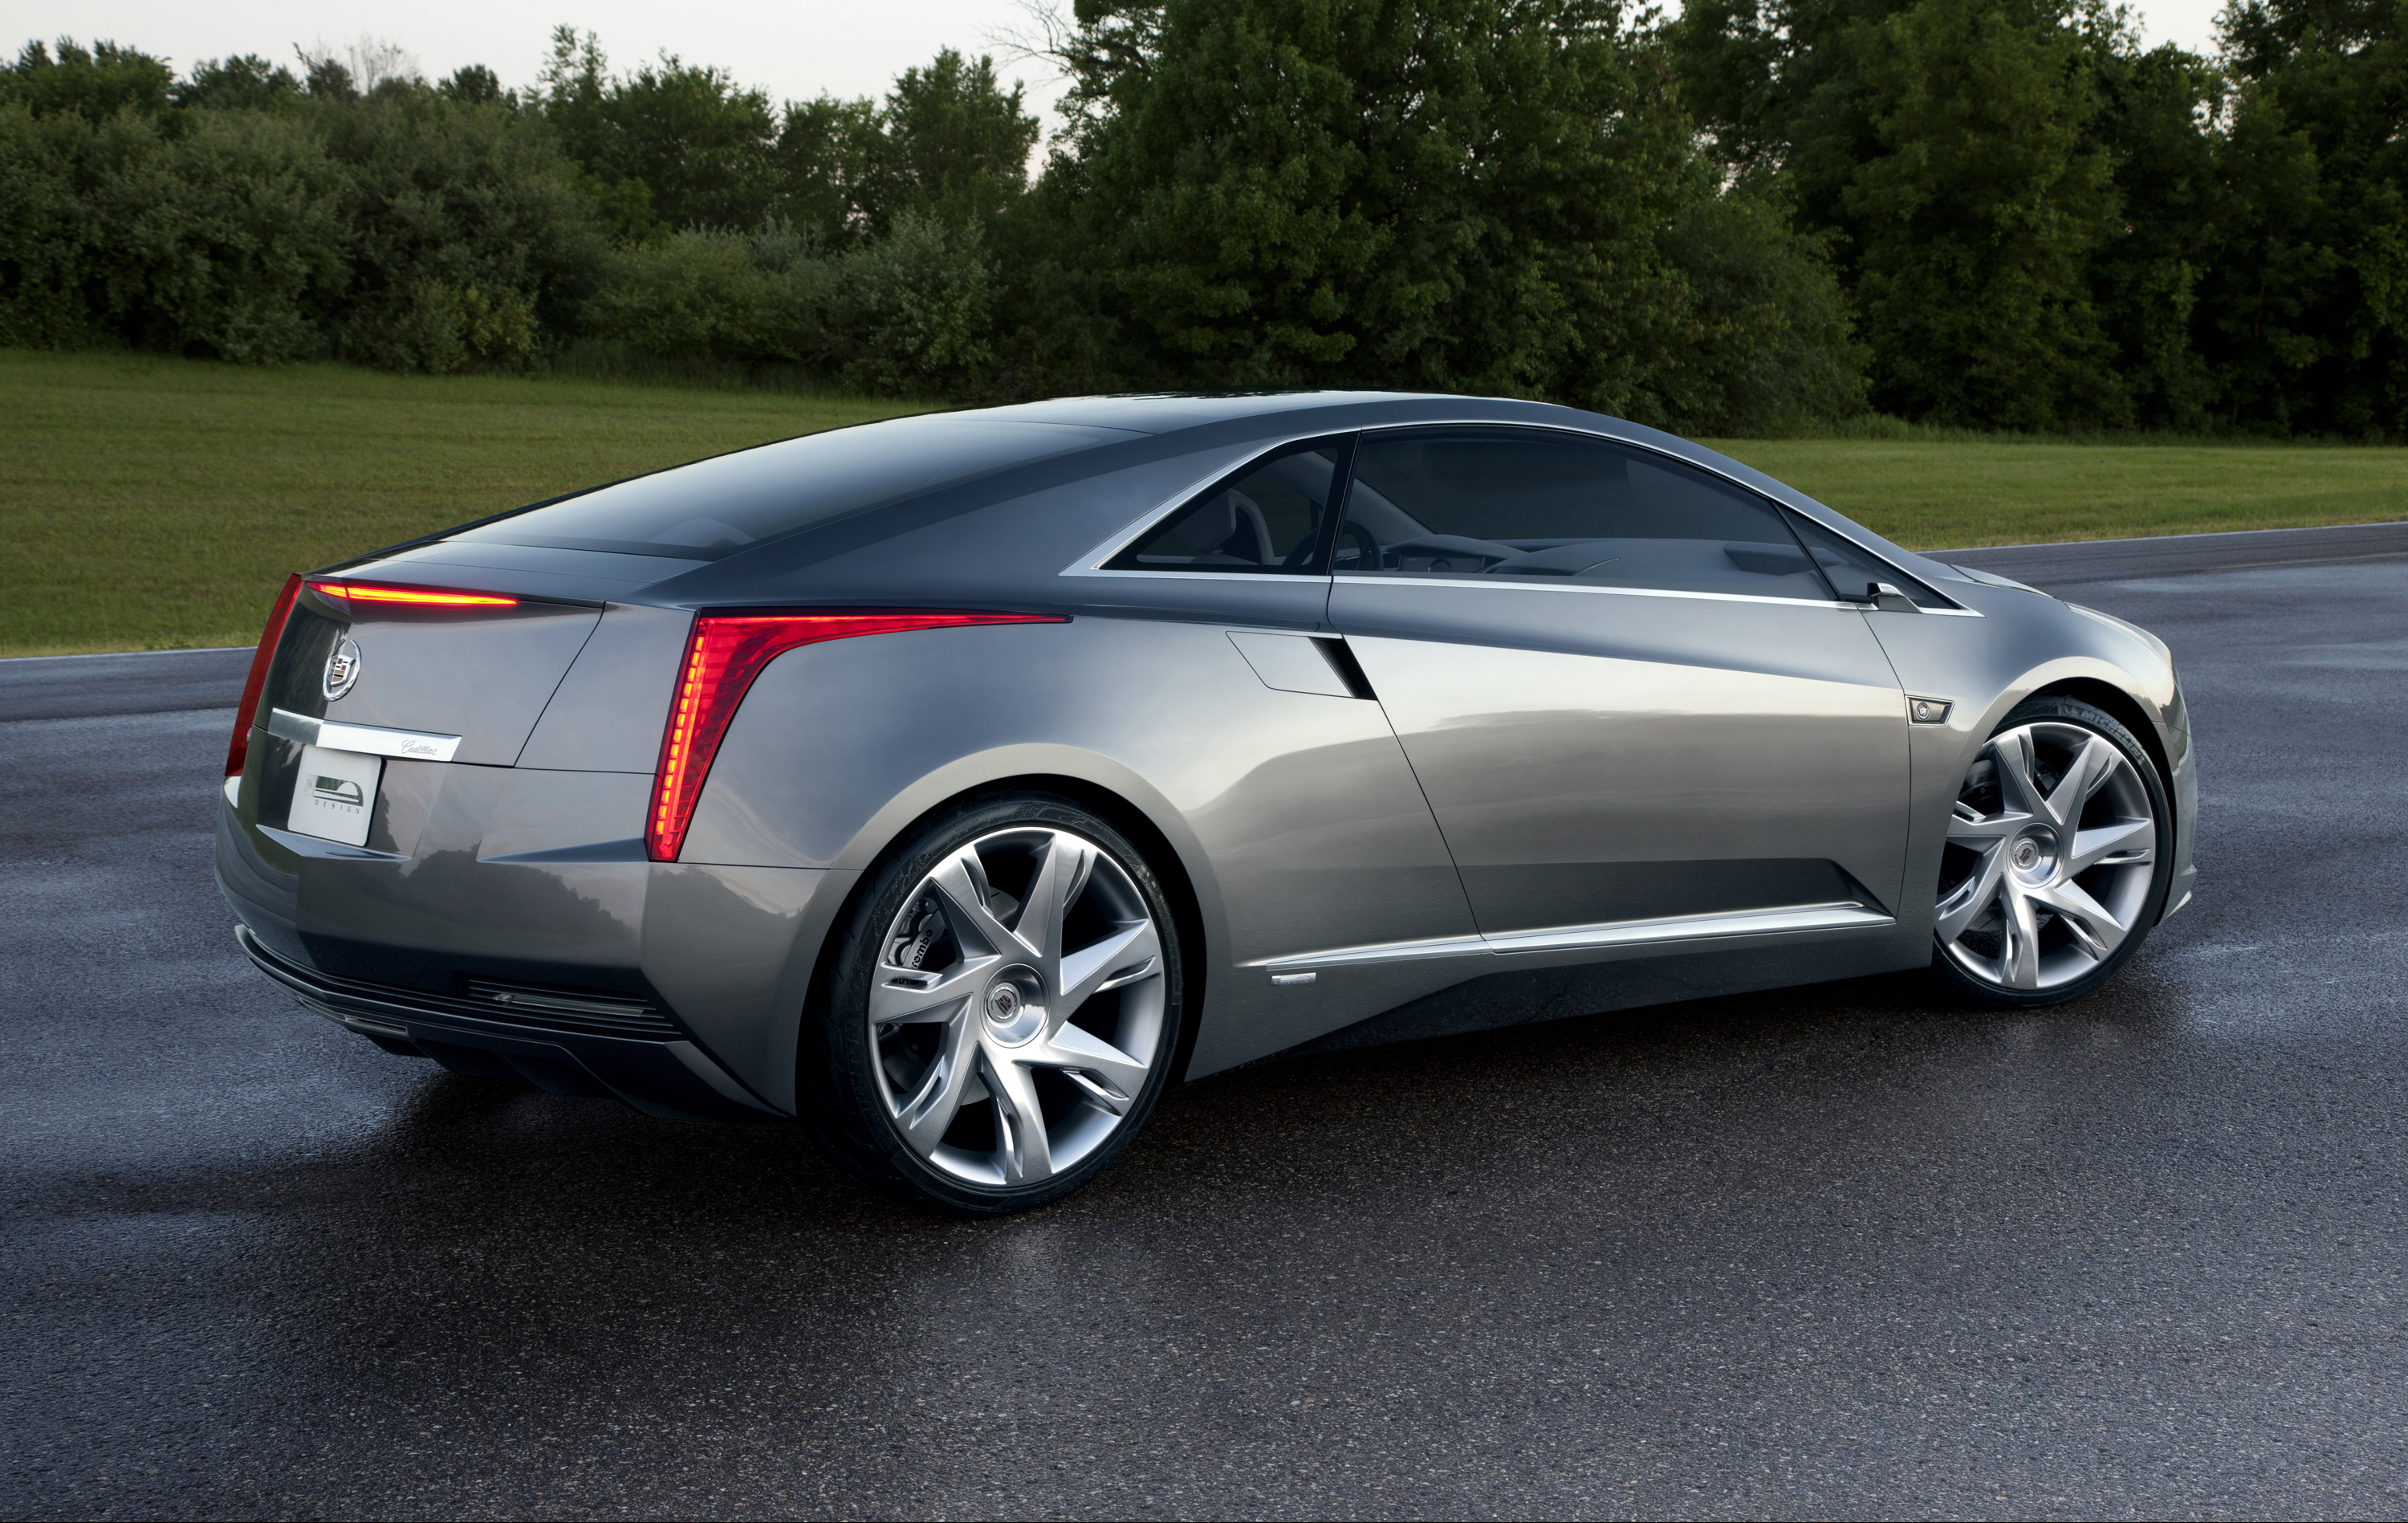 The electric Cadillac ELR will use the same propulsion system as the Chevy Volt.